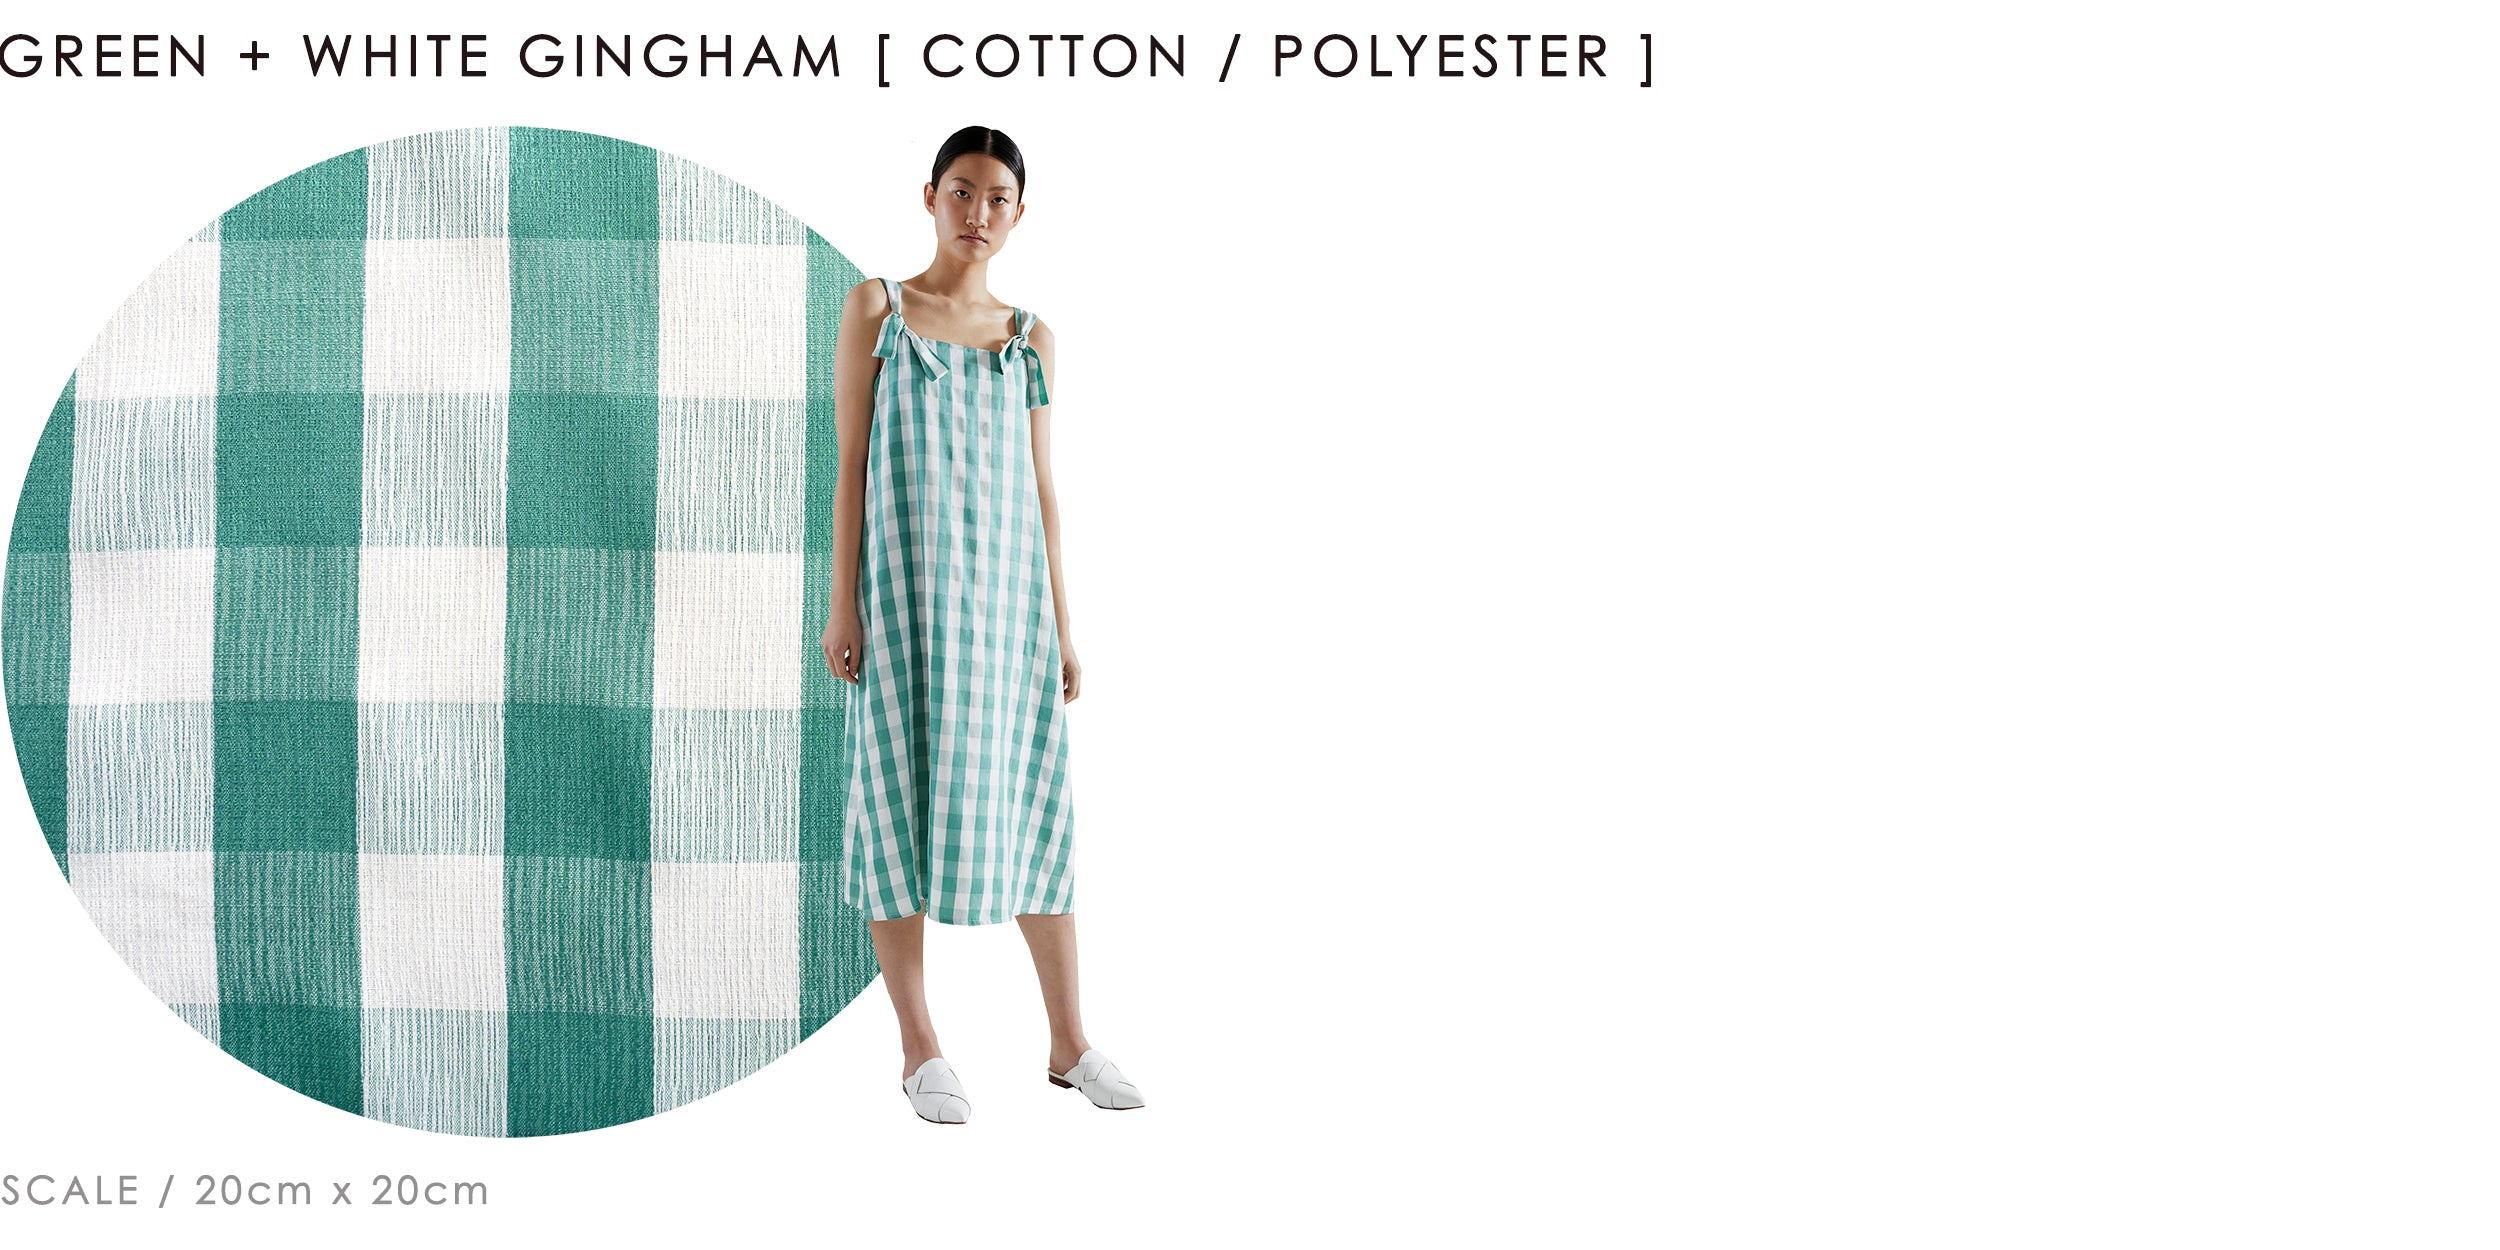 keegan green and white gingham fabric classics range cotton / polyester